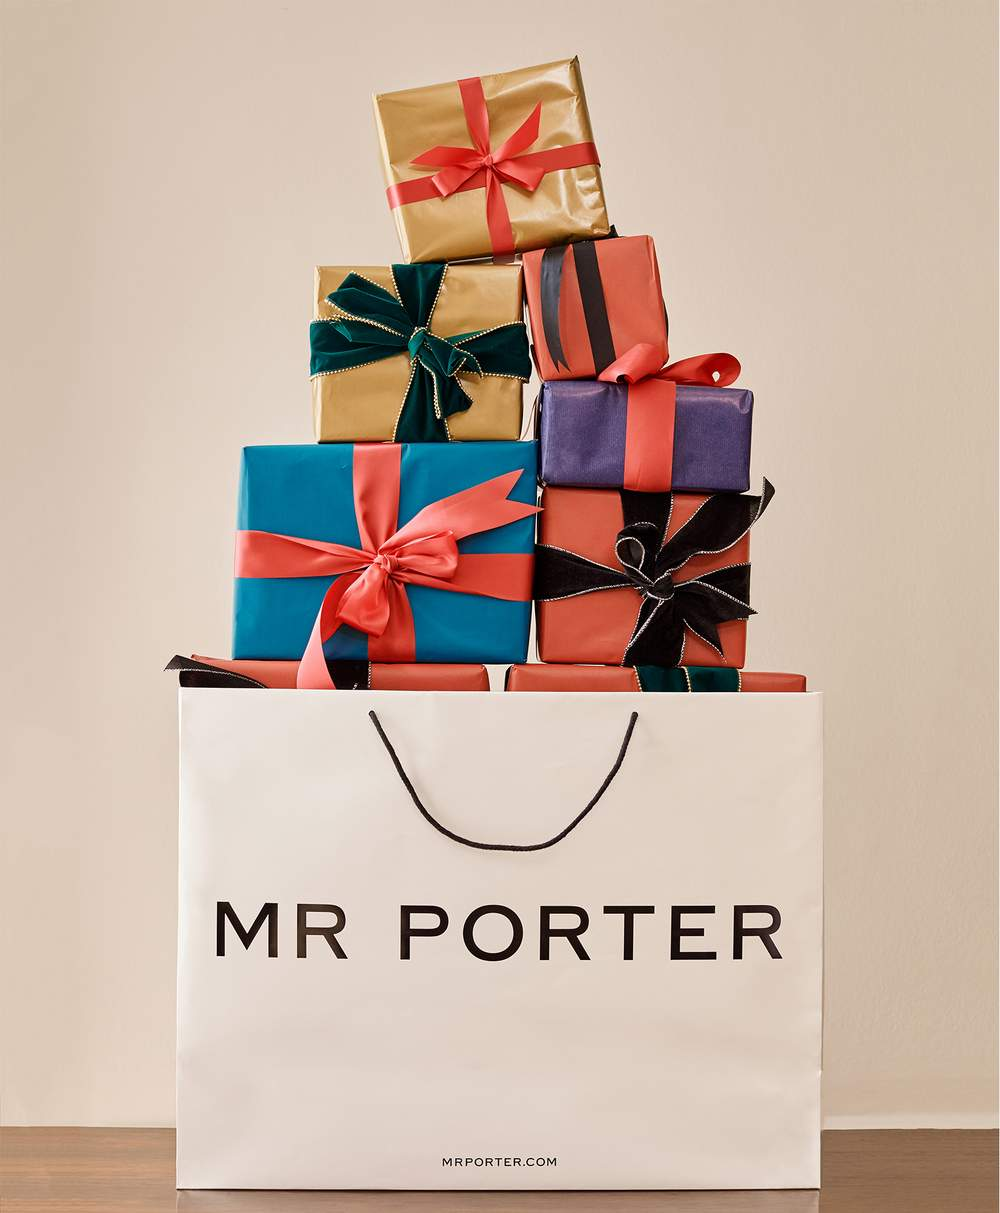 How A Chatbot Can Help You Find The Perfect Gift